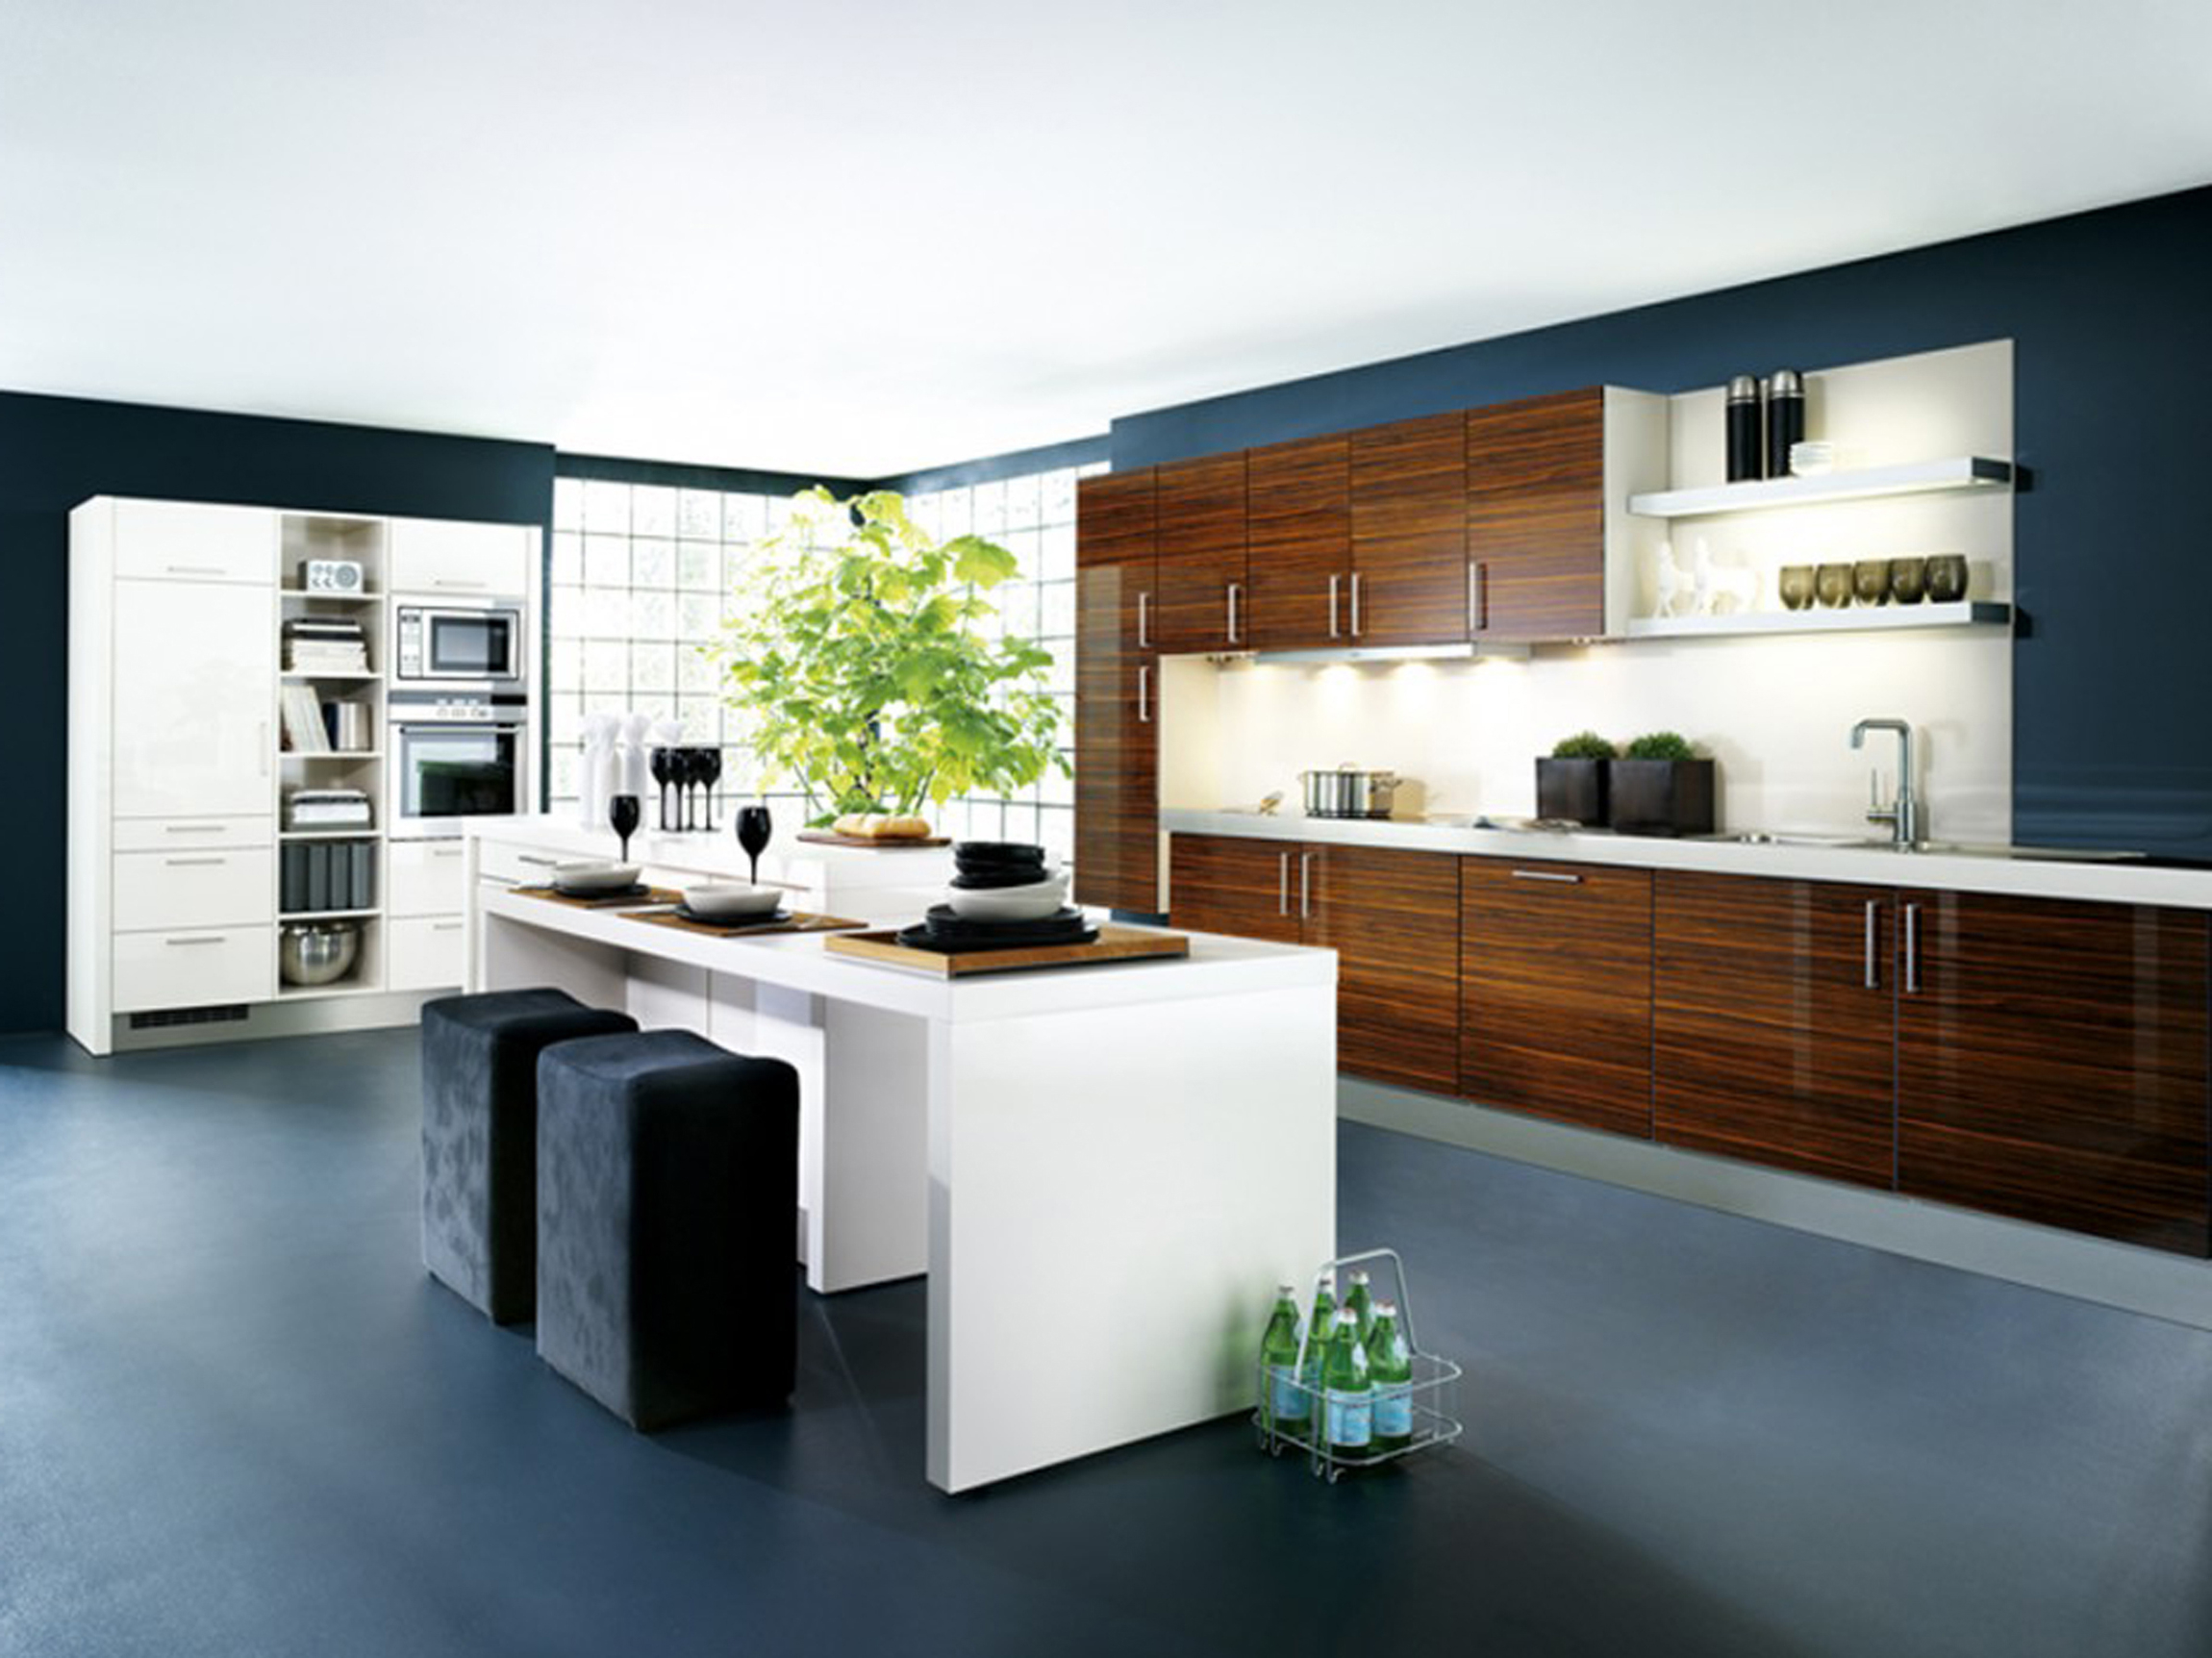 Concept For Contemporary Modern Kitchen Cabinets Blue Floor Wooden Design Ideas (View 18 of 39)